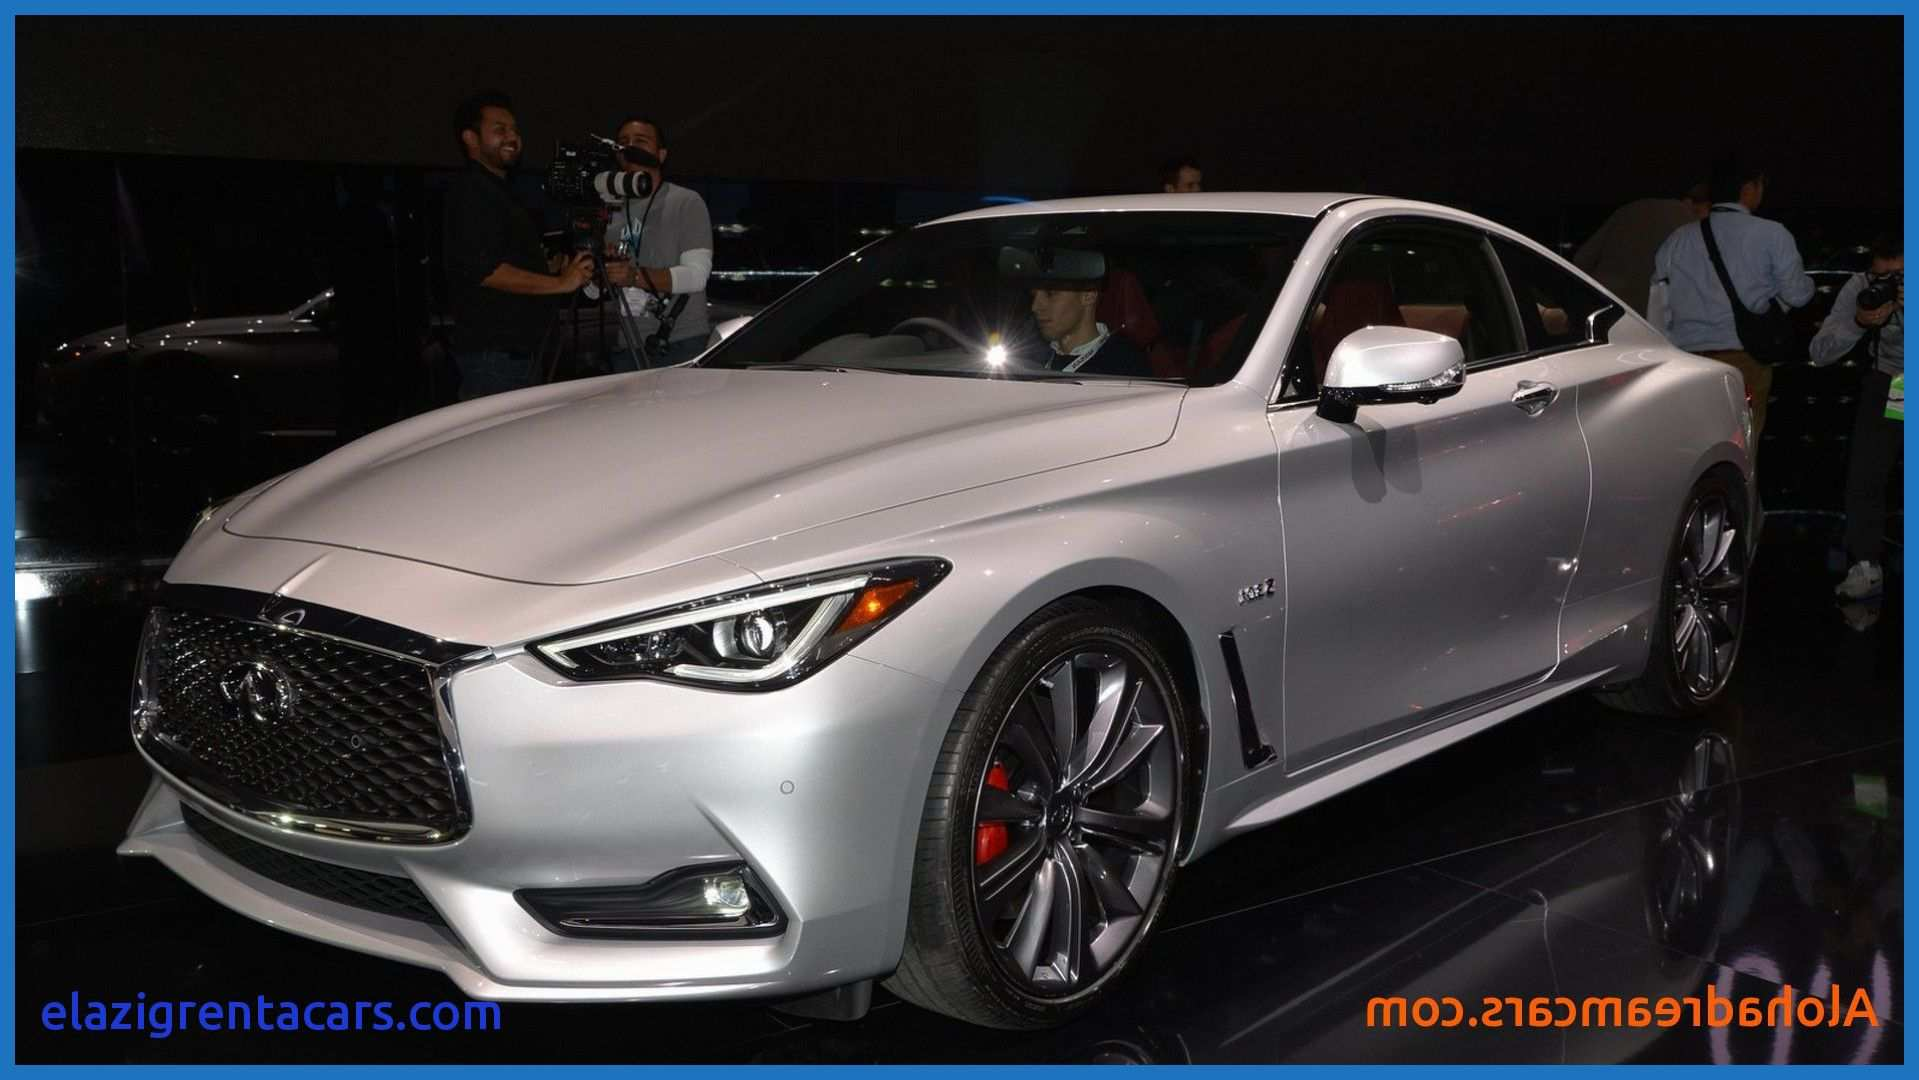 23 Concept of The 2019 Infiniti Q60 Coupe Review Specs And Release Date Model with The 2019 Infiniti Q60 Coupe Review Specs And Release Date